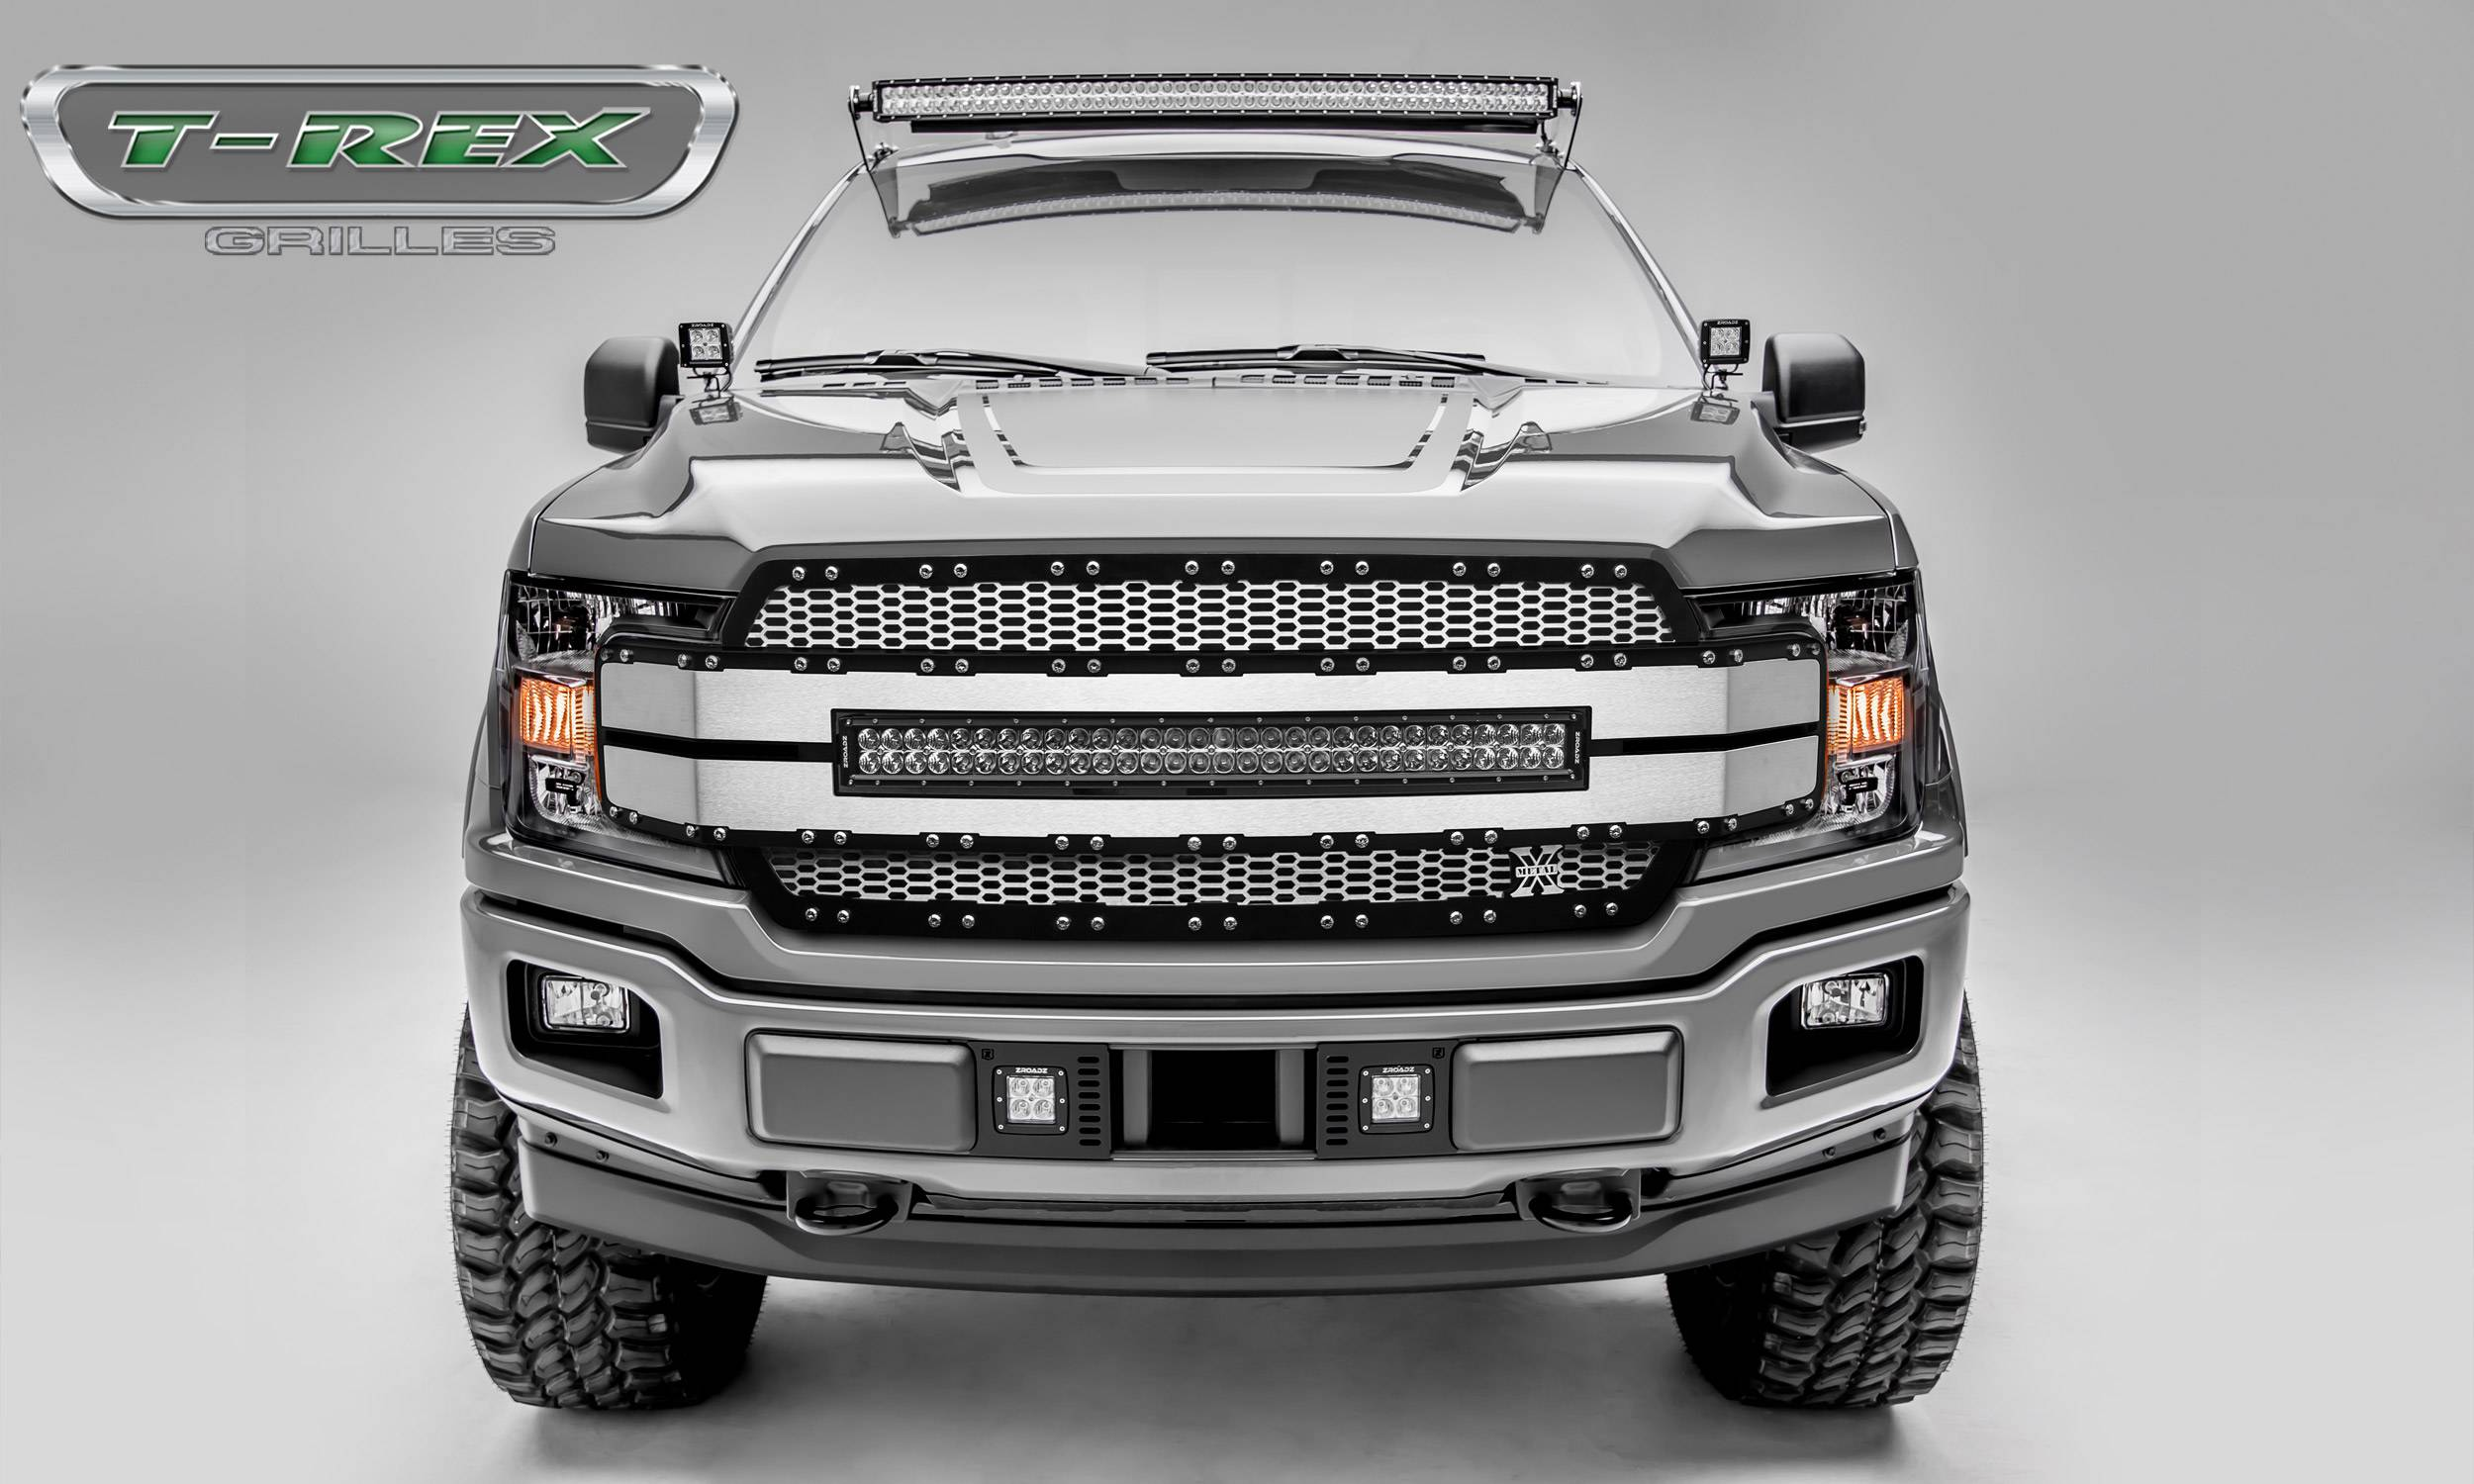 """Ford F-150 Torch-AL Series, Replacement Grille, Includes  (1) 30"""" LED Light Bar, Universal Wire Harness, Aluminum Frame, Laser Cut Web Pattern, Chrome Studs, Black w/ Brushed Mesh and Brushed Trim Pt # 6315785"""